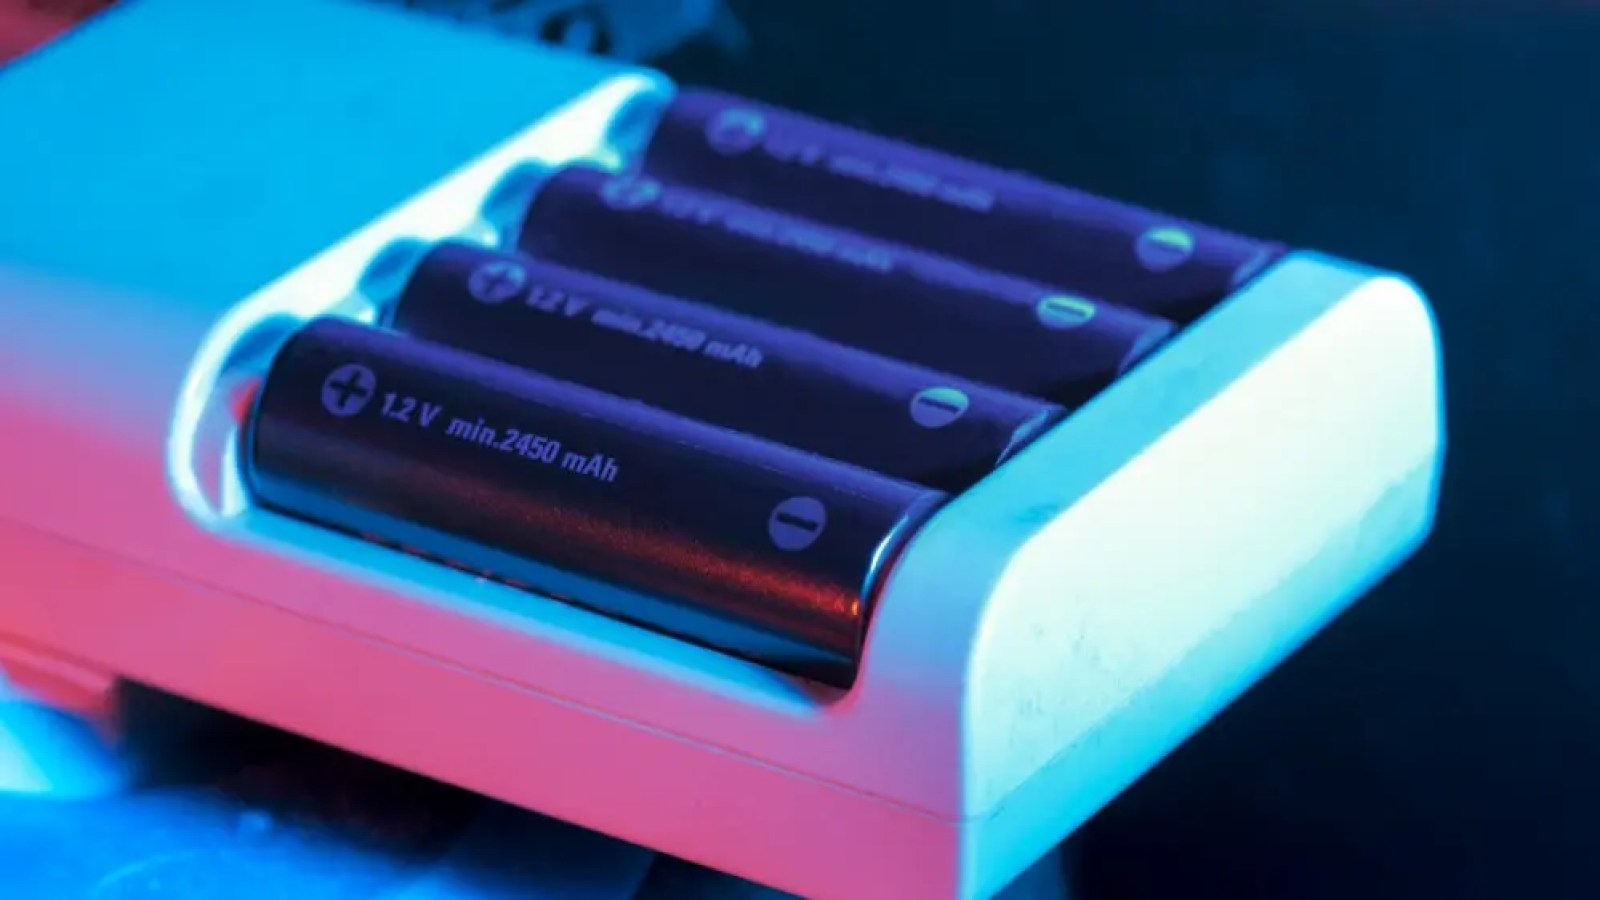 Rechargeable AA battery being charged